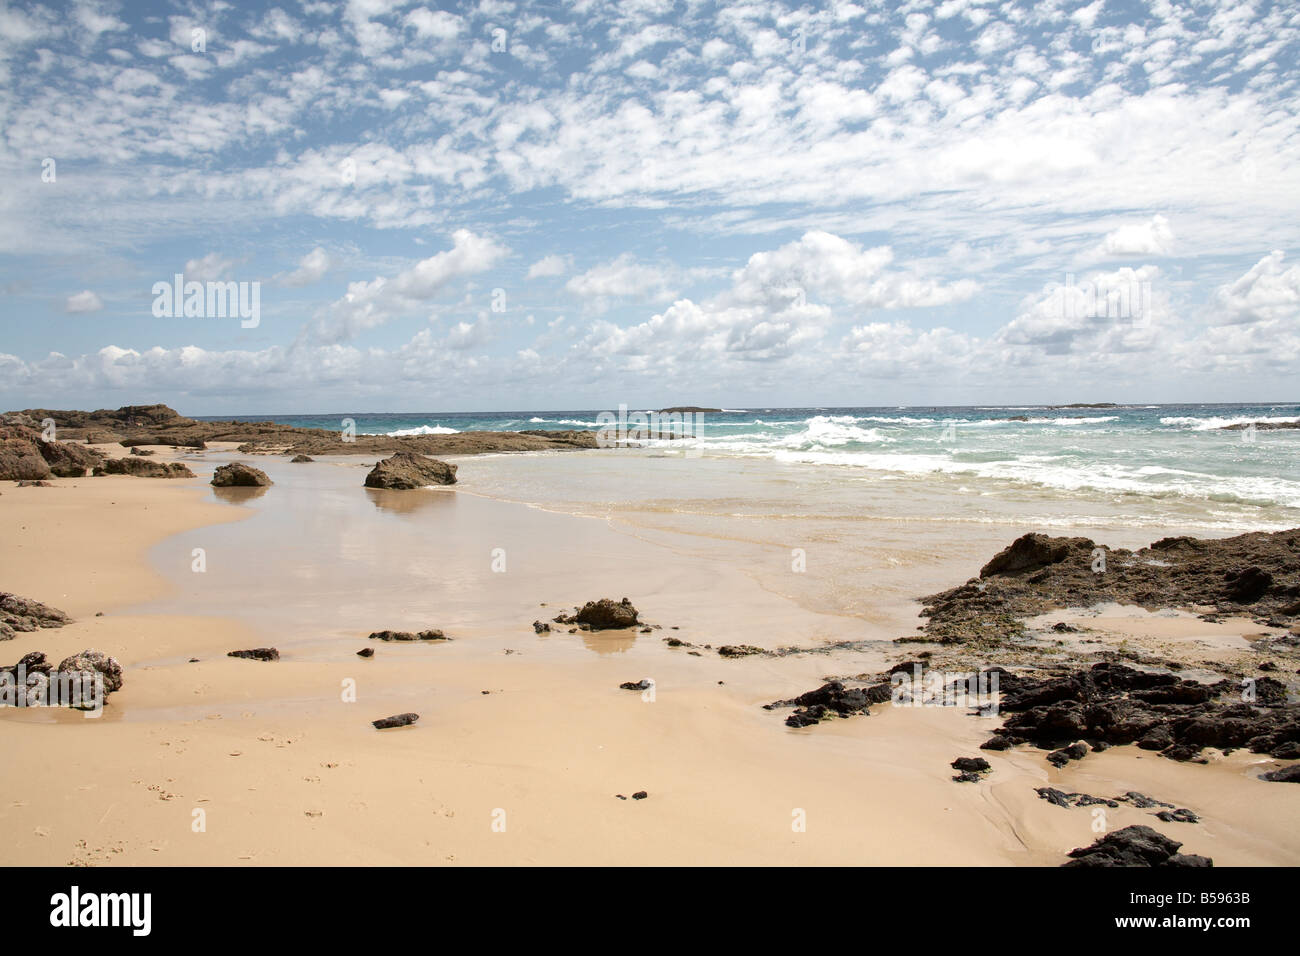 Frenchmans beach with wet sand and rocks on North Stradbroke Island Queensland QLD Australia - Stock Image